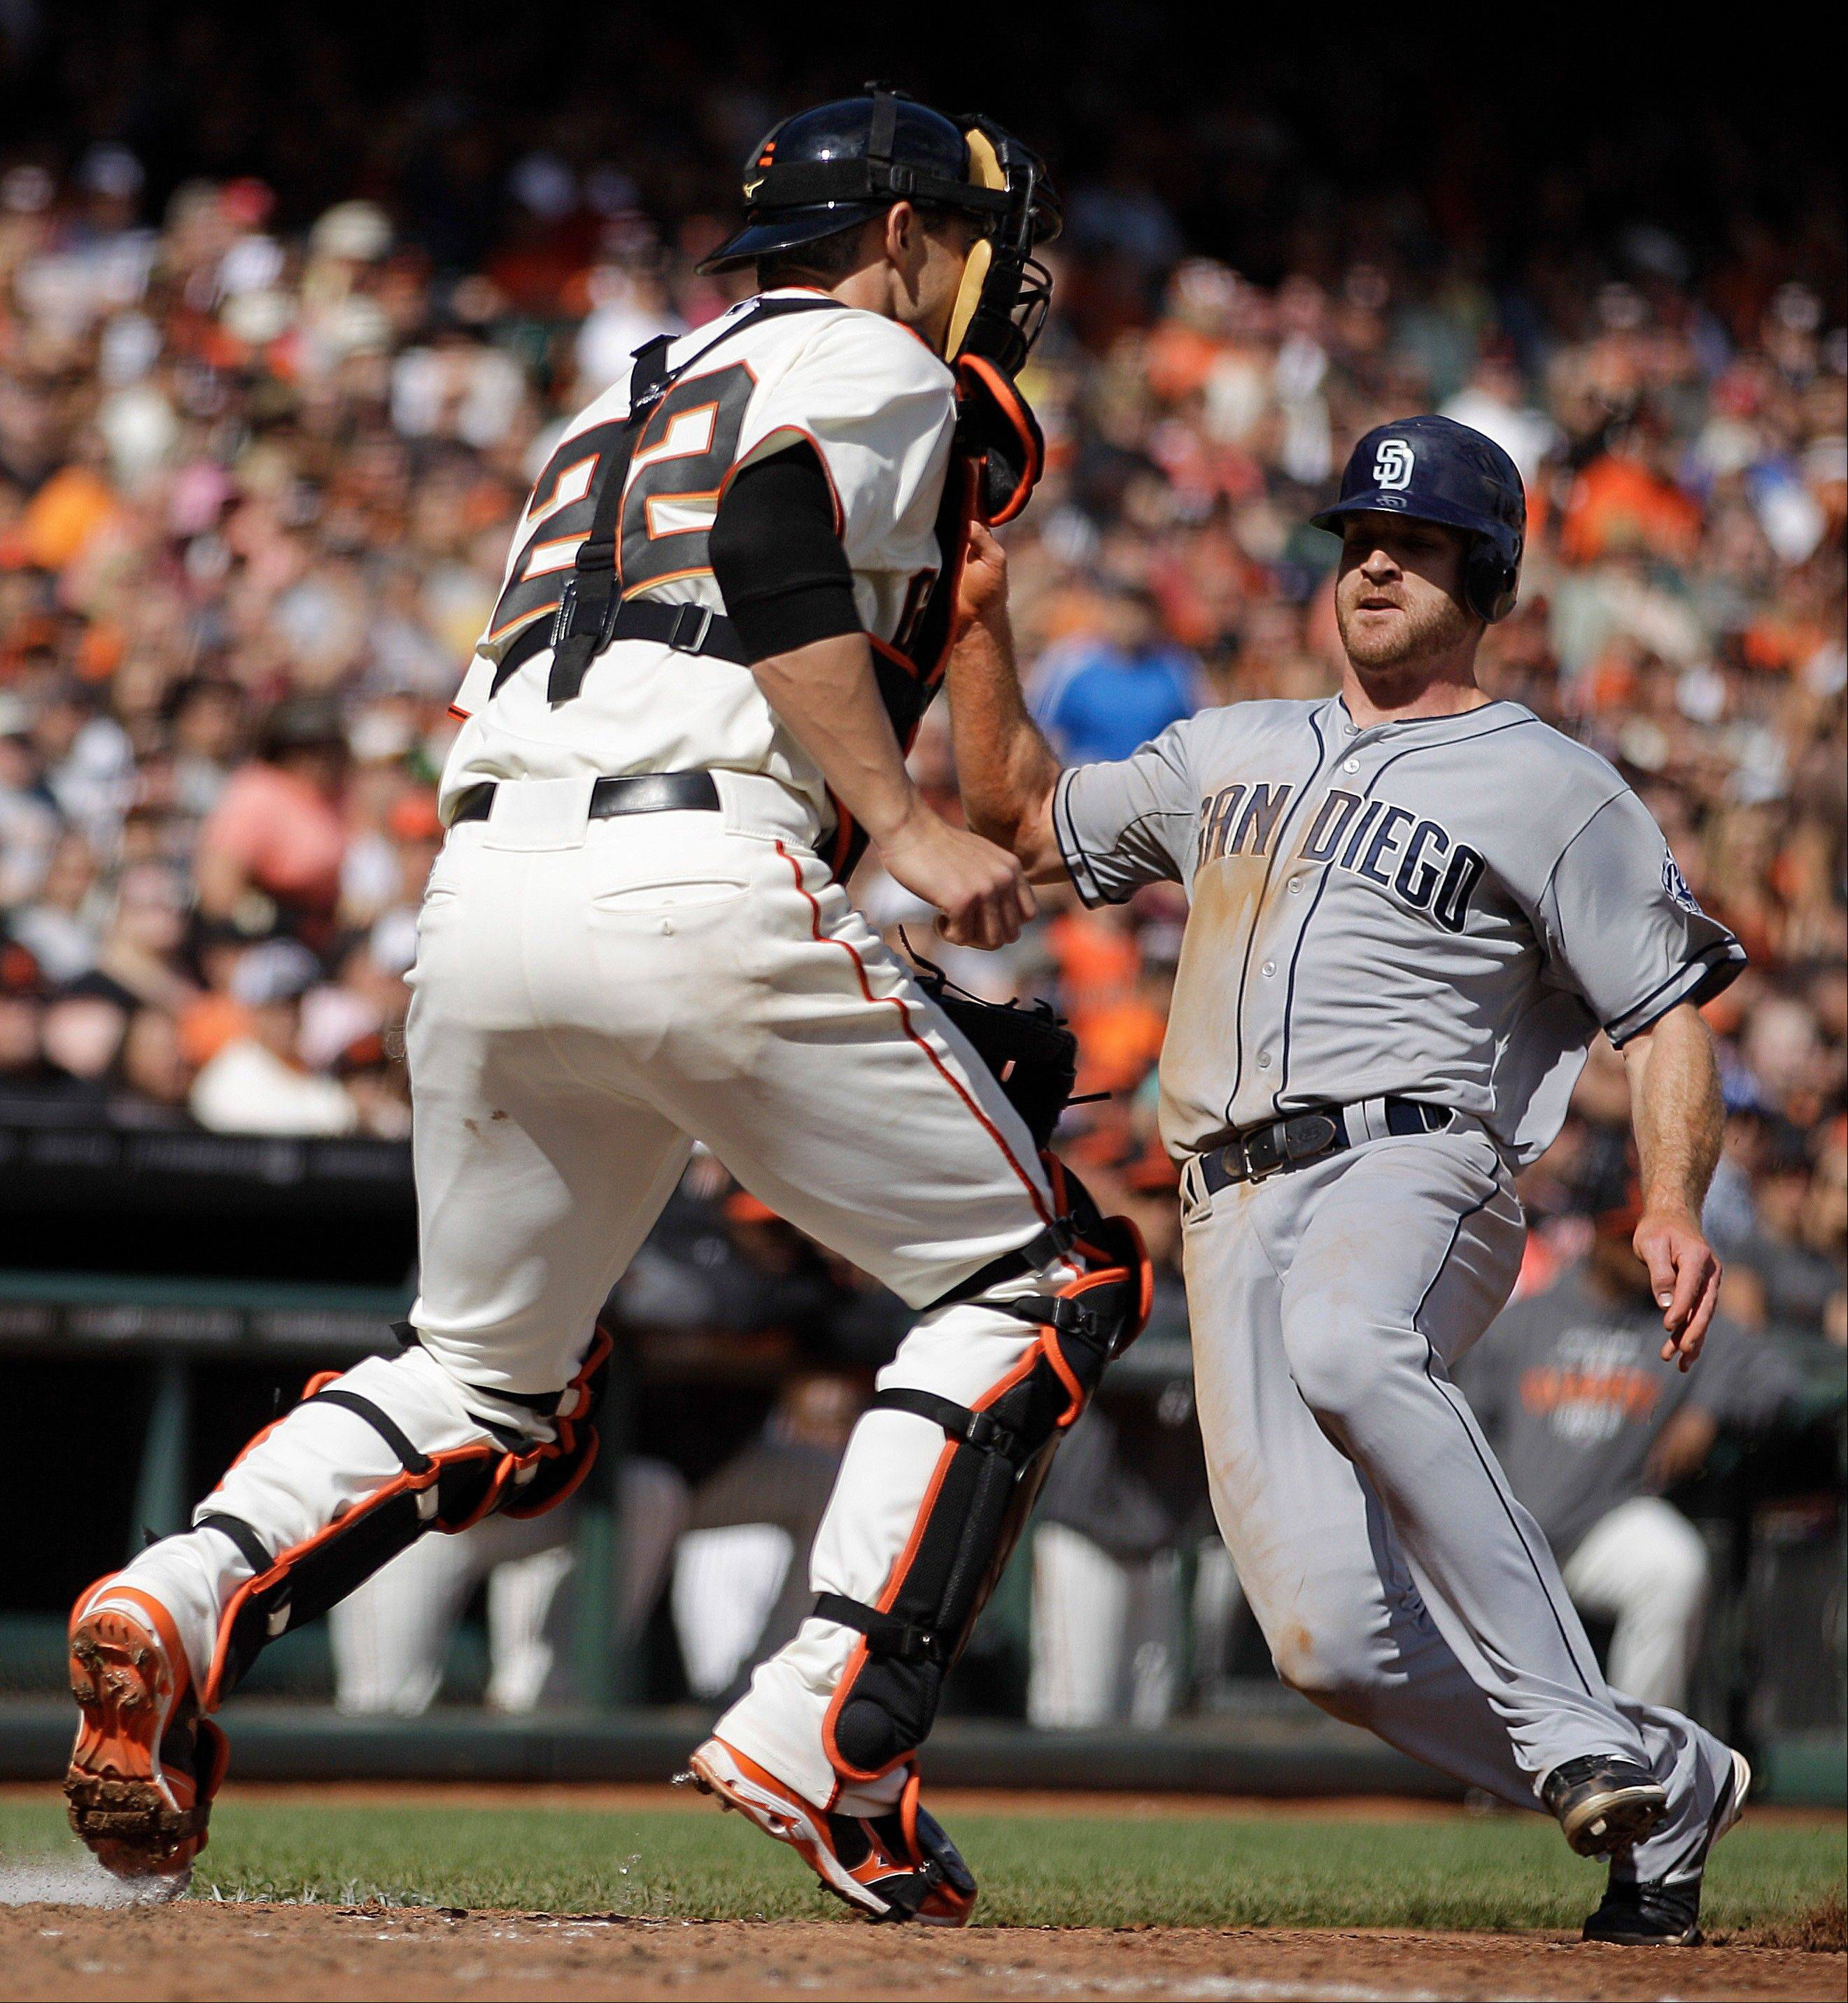 The Padres� Logan Forsythe slides past San Francisco Giants catcher Eli Whiteside in the fifth inning Sunday in San Francisco. Forsythe scored on a single by Yasmani Grandal.